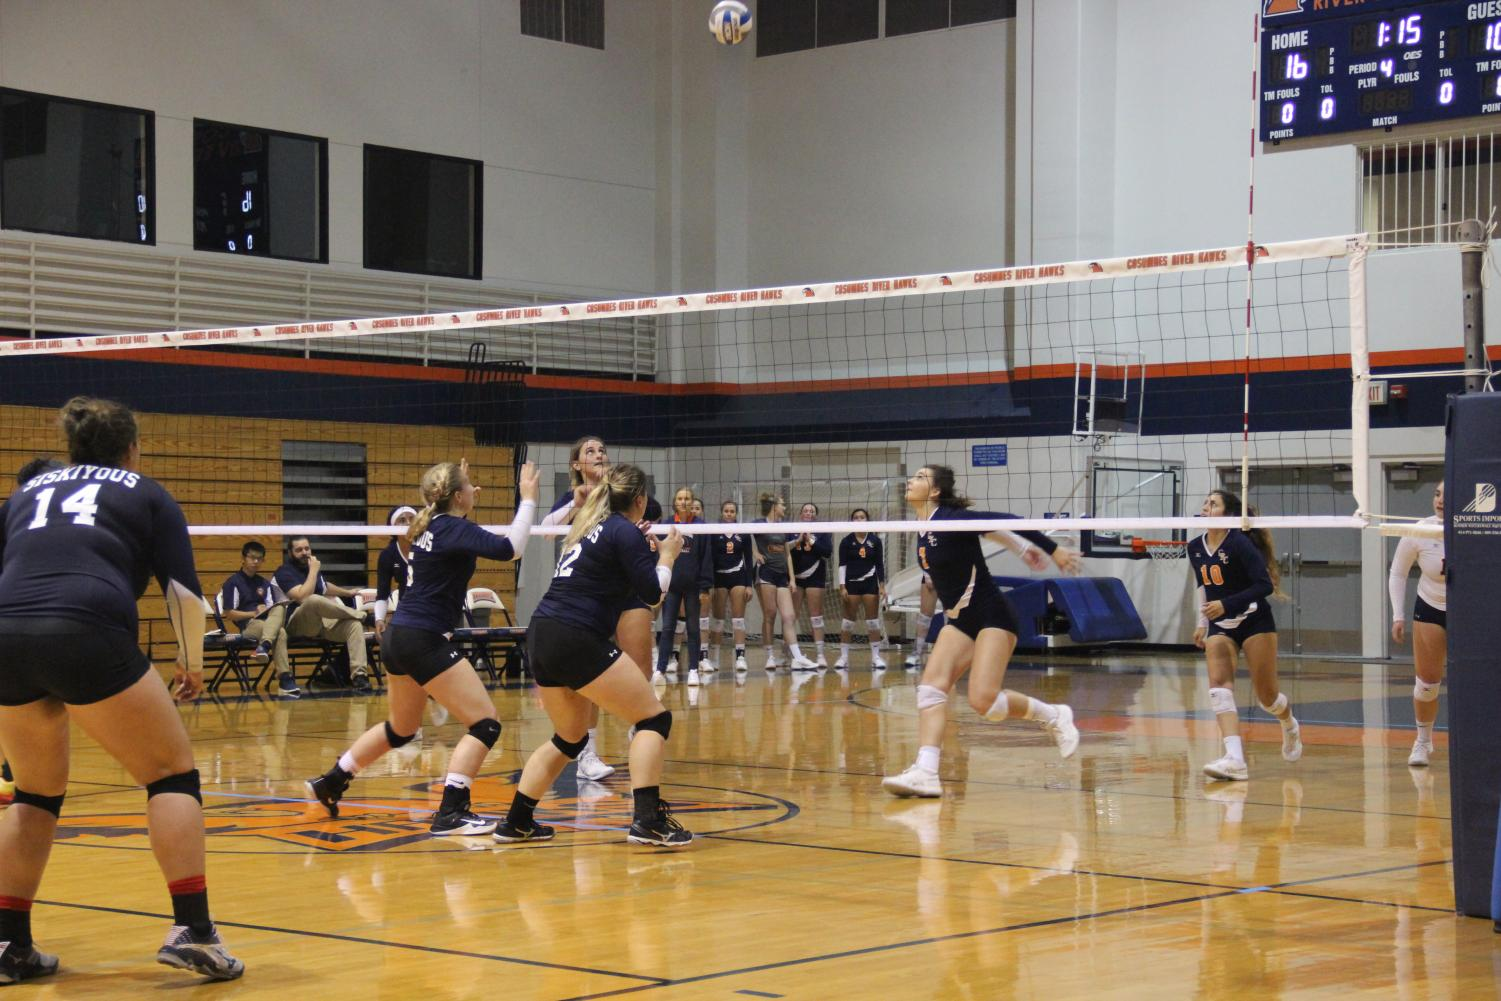 Freshman middle blocker Taryn Oberle sets up for a kill. Oberle is one of seven freshman who bring new talent and promise to the team.